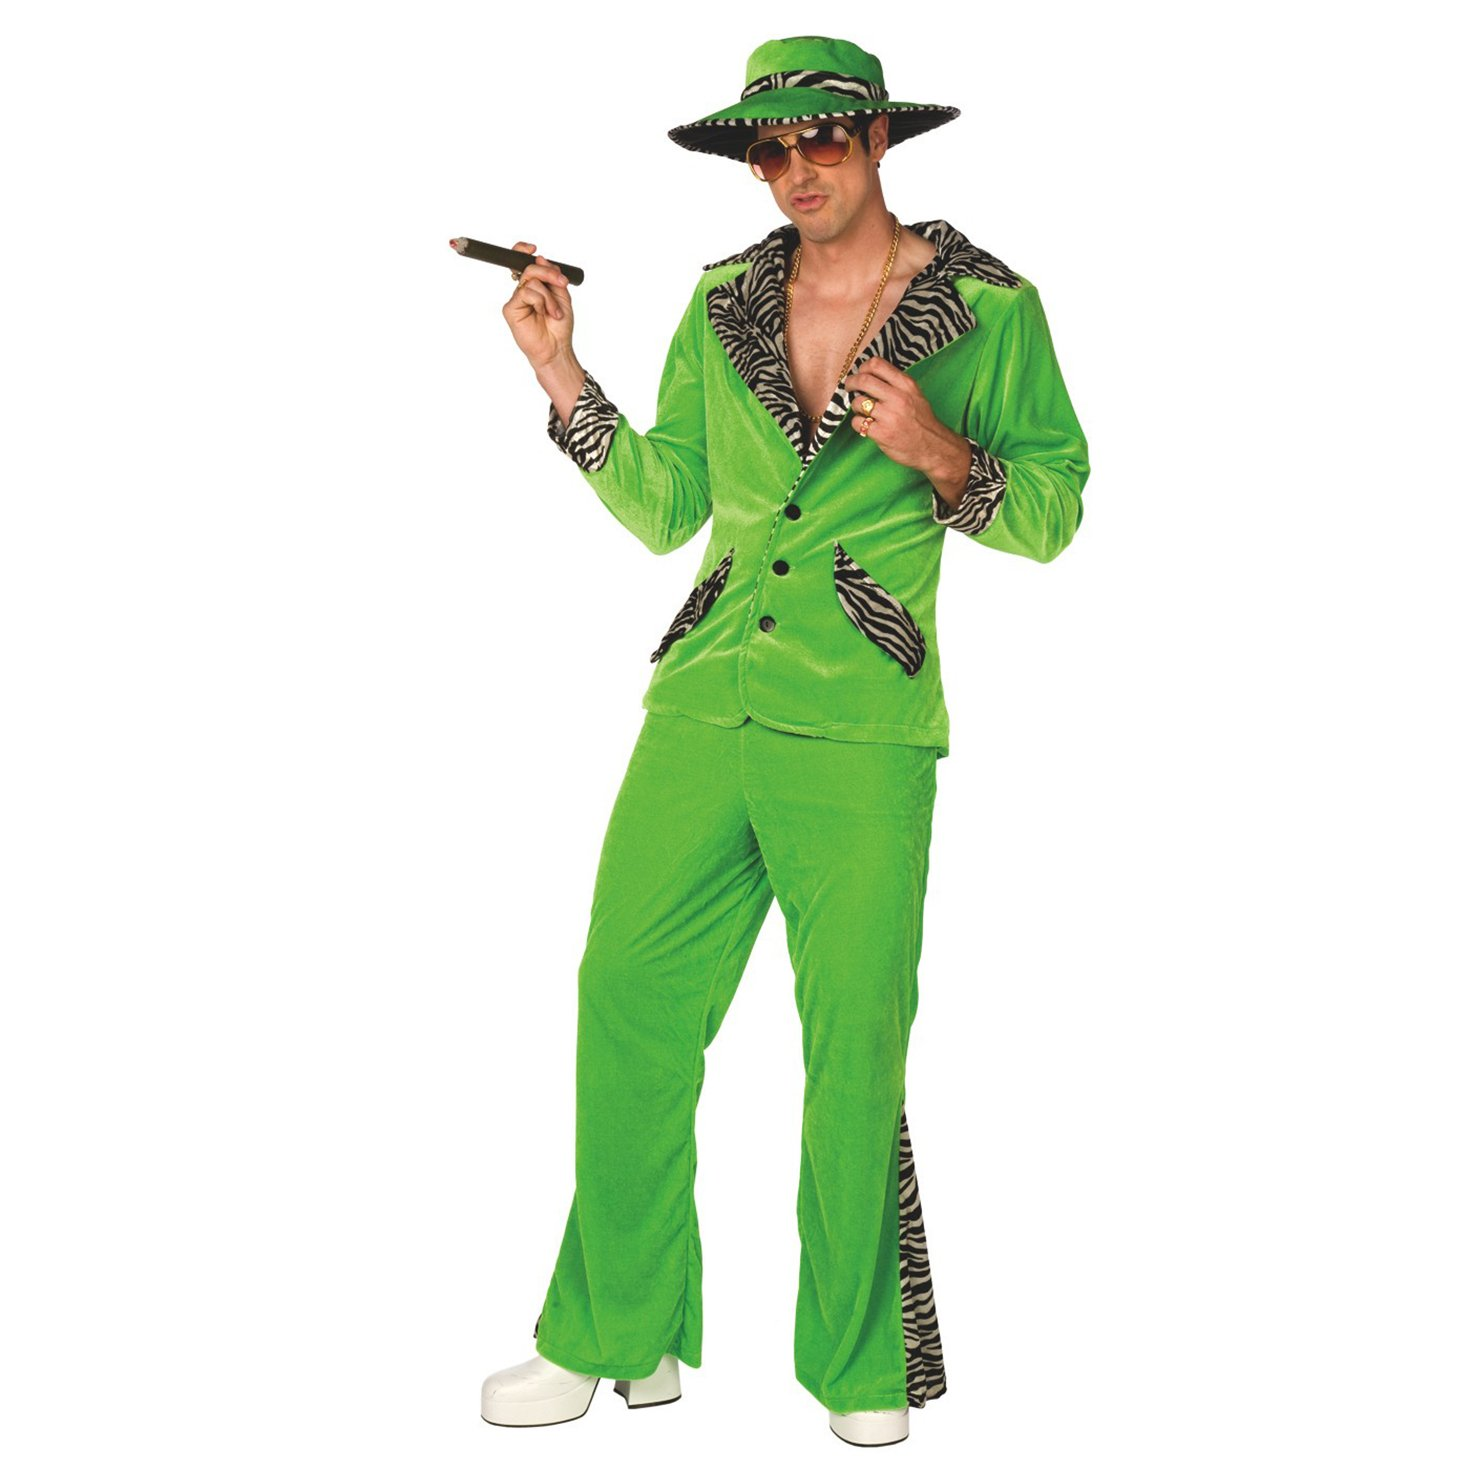 Mens Pimp Daddy Costume Green Velvet Suit for Bachelor Stag Party Fancy Dress by Morph